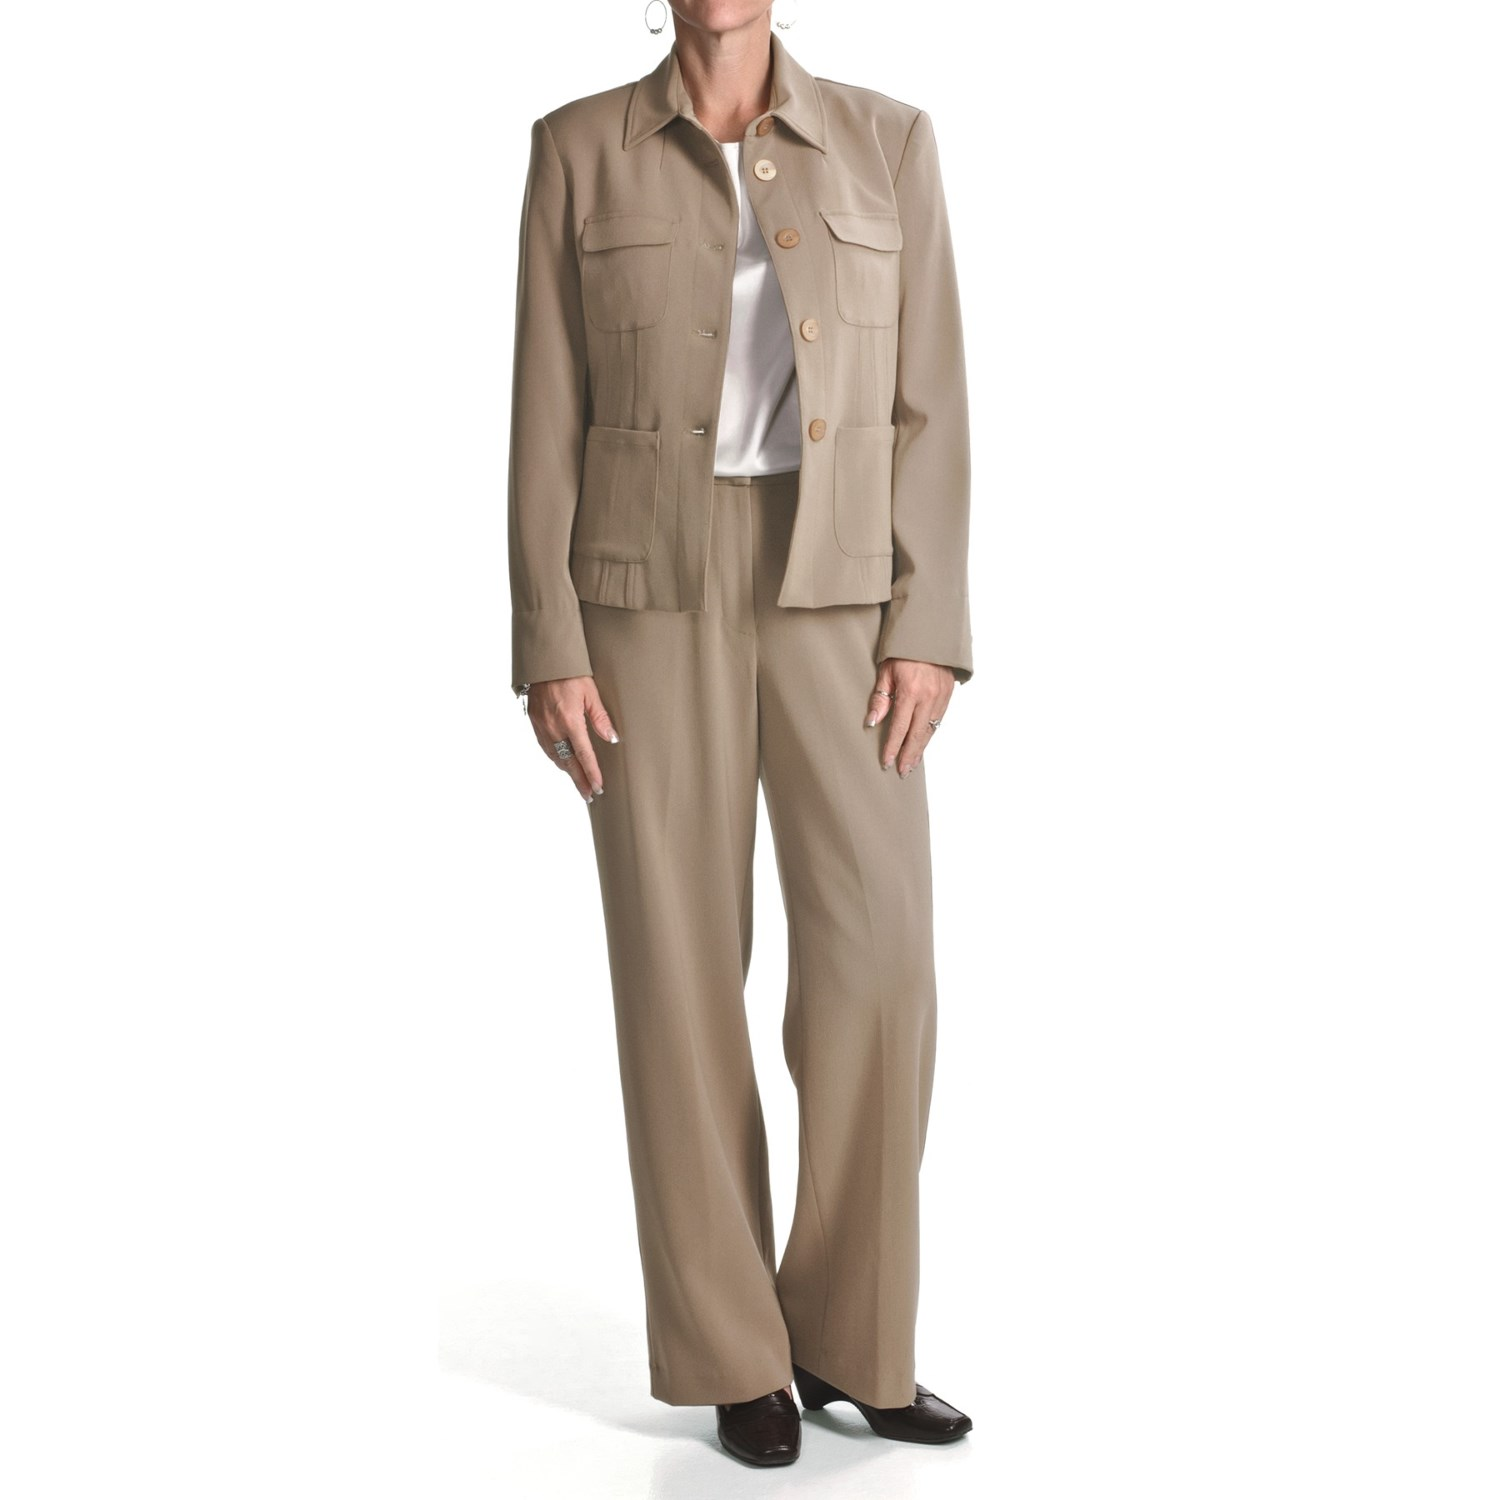 Amelia Austin Crepe Pant Suit (For Women) 3722G - Save 61%